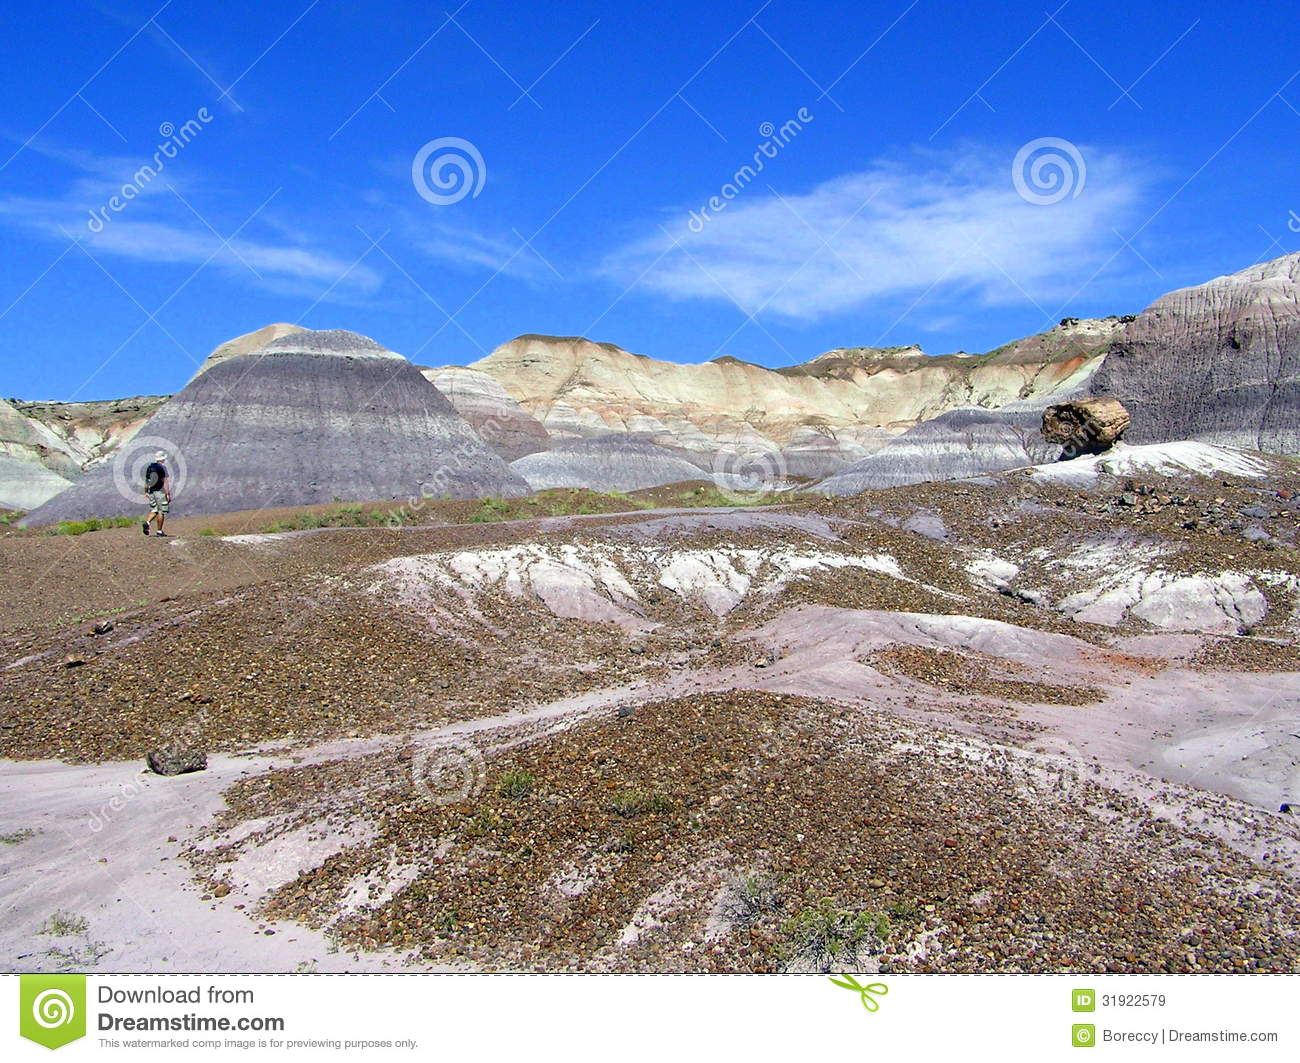 meet petrified forest natl pk singles This is part of a series, planet terra, which when licensed allows you to add your own custom narration to meet you specific marketing needs contact us at t.